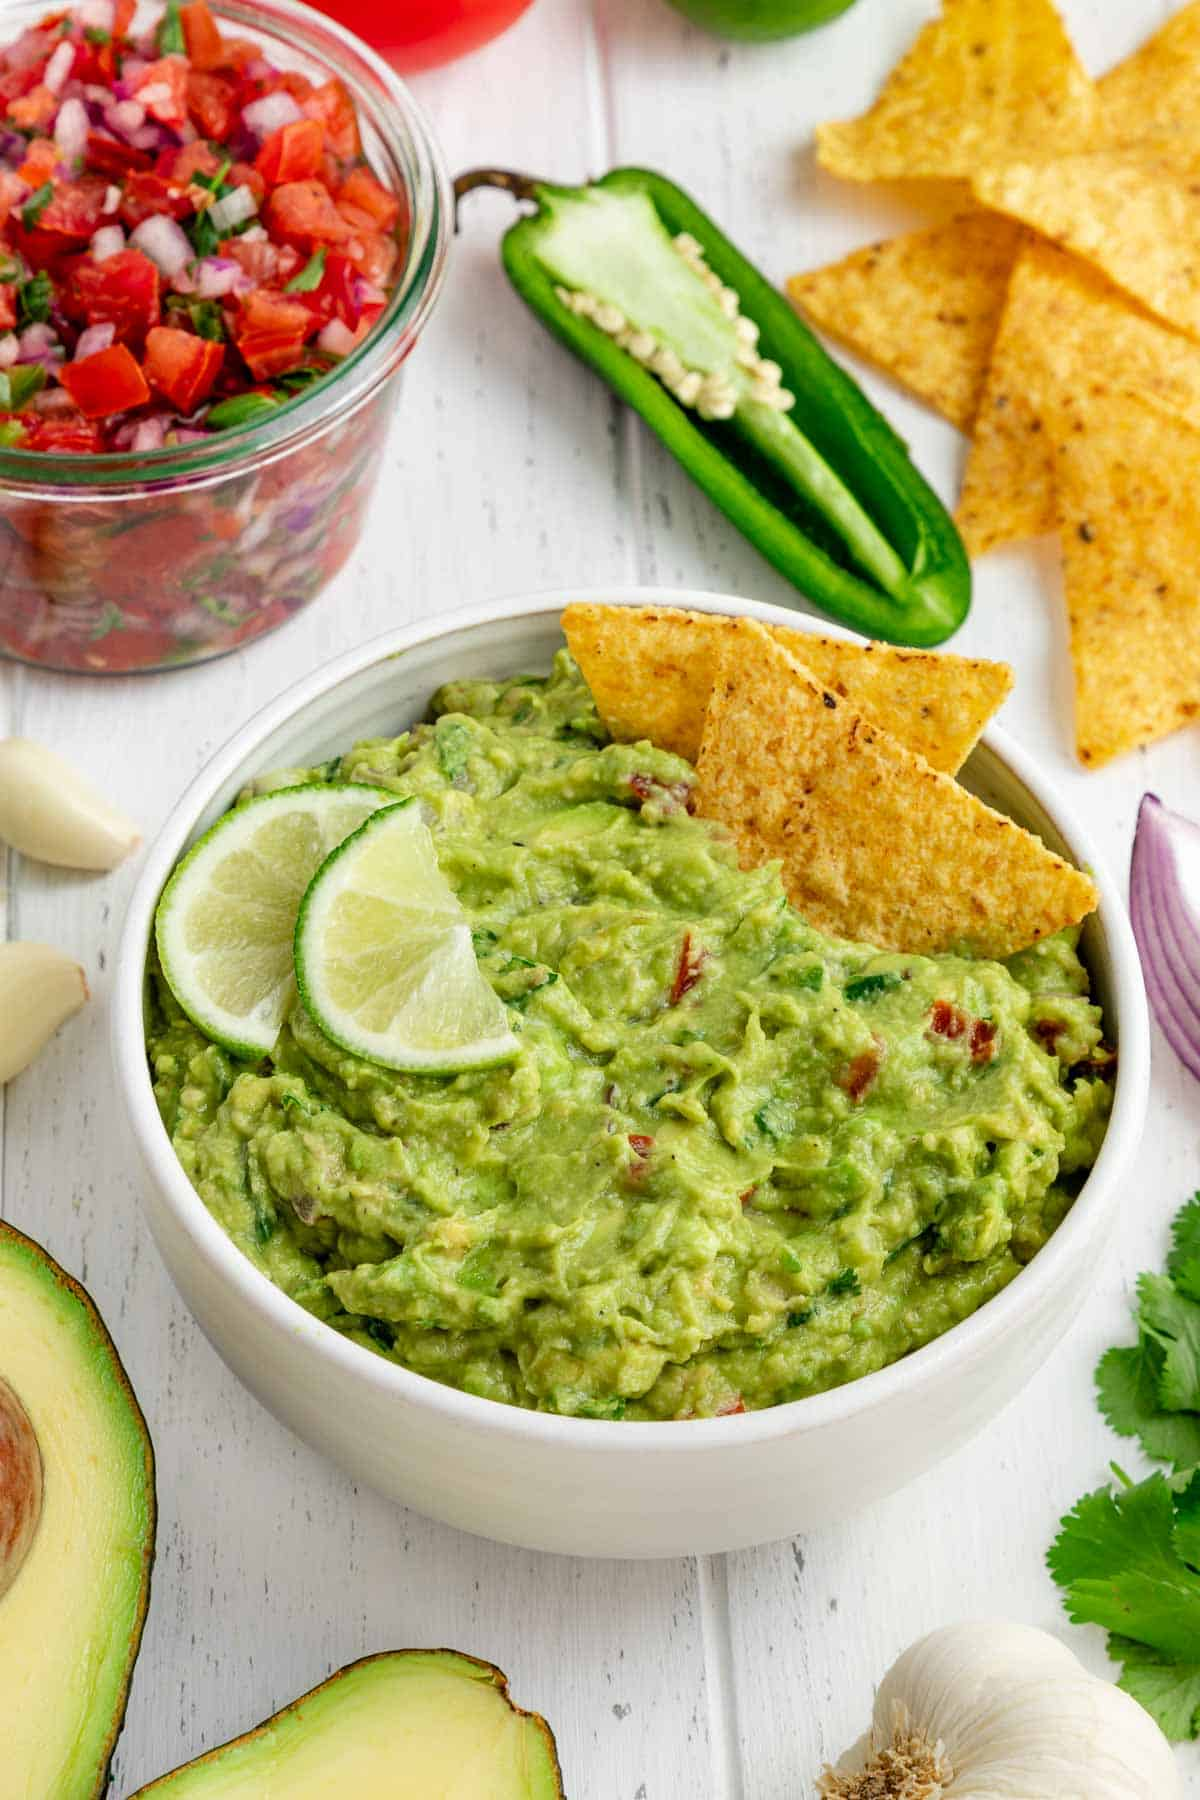 best guacamole in a white bowl with corn tortilla chips, limes, and surrounded by guac ingredients